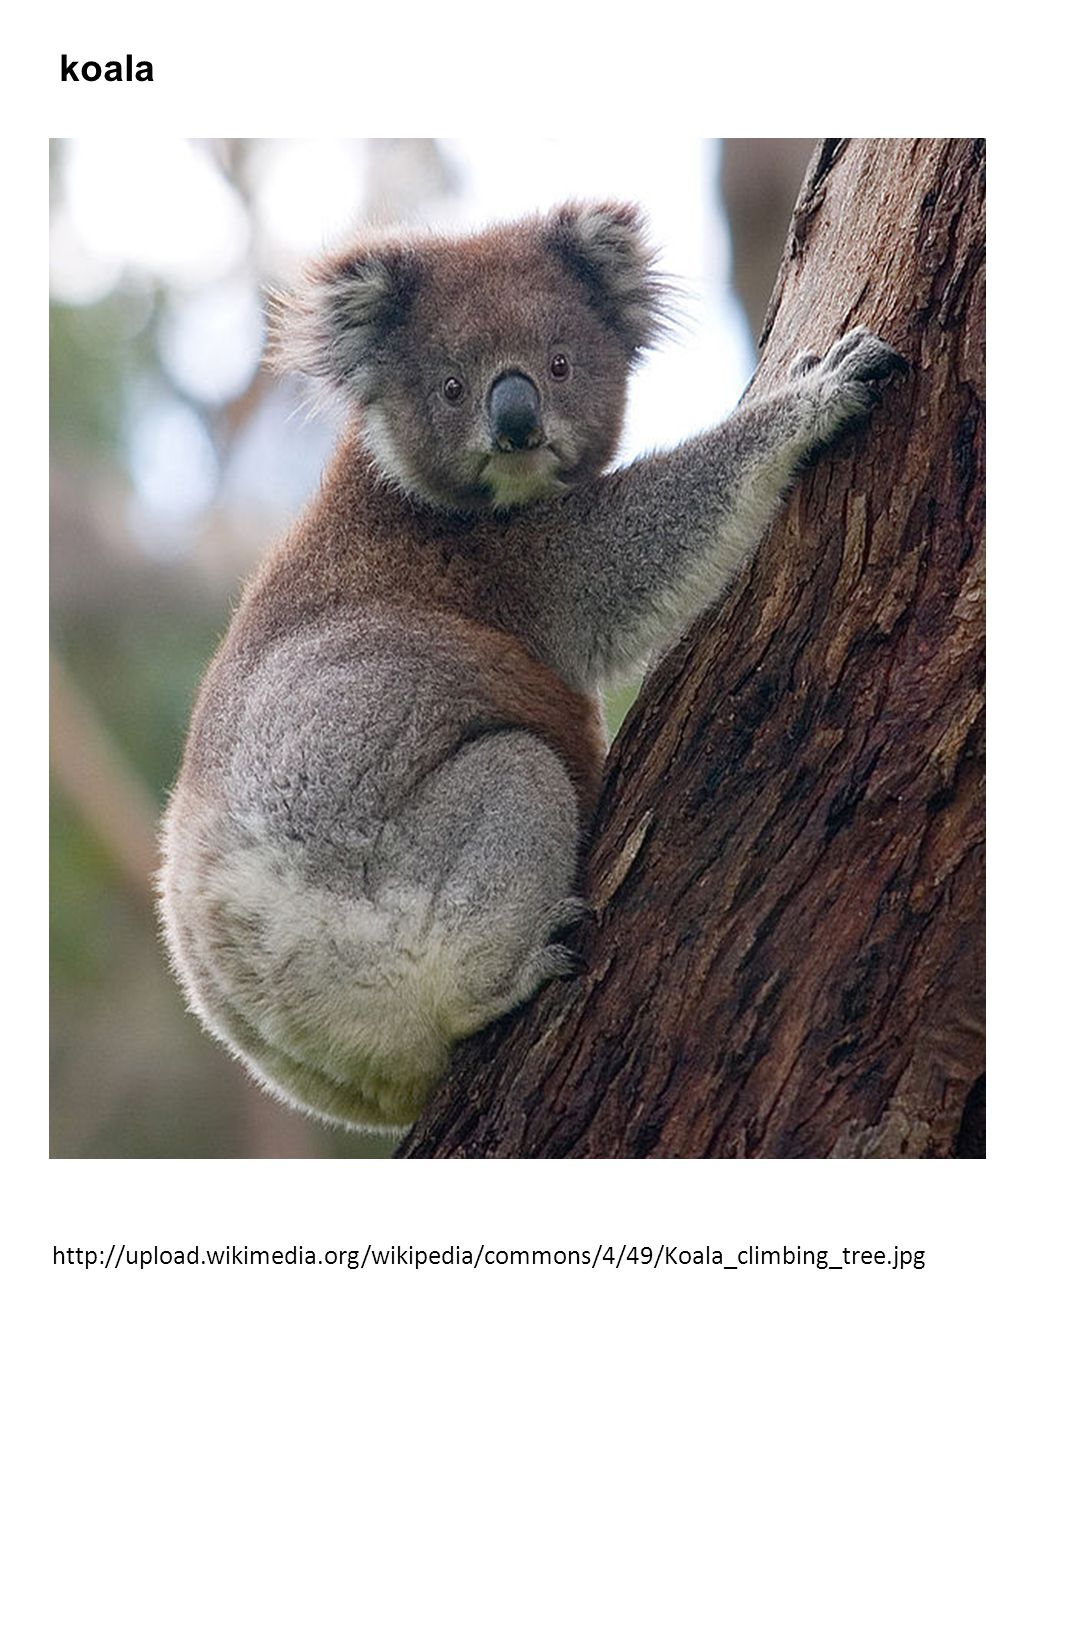 koala http://upload.wikimedia.org/wikipedia/commons/4/49/Koala_climbing_tree.jpg